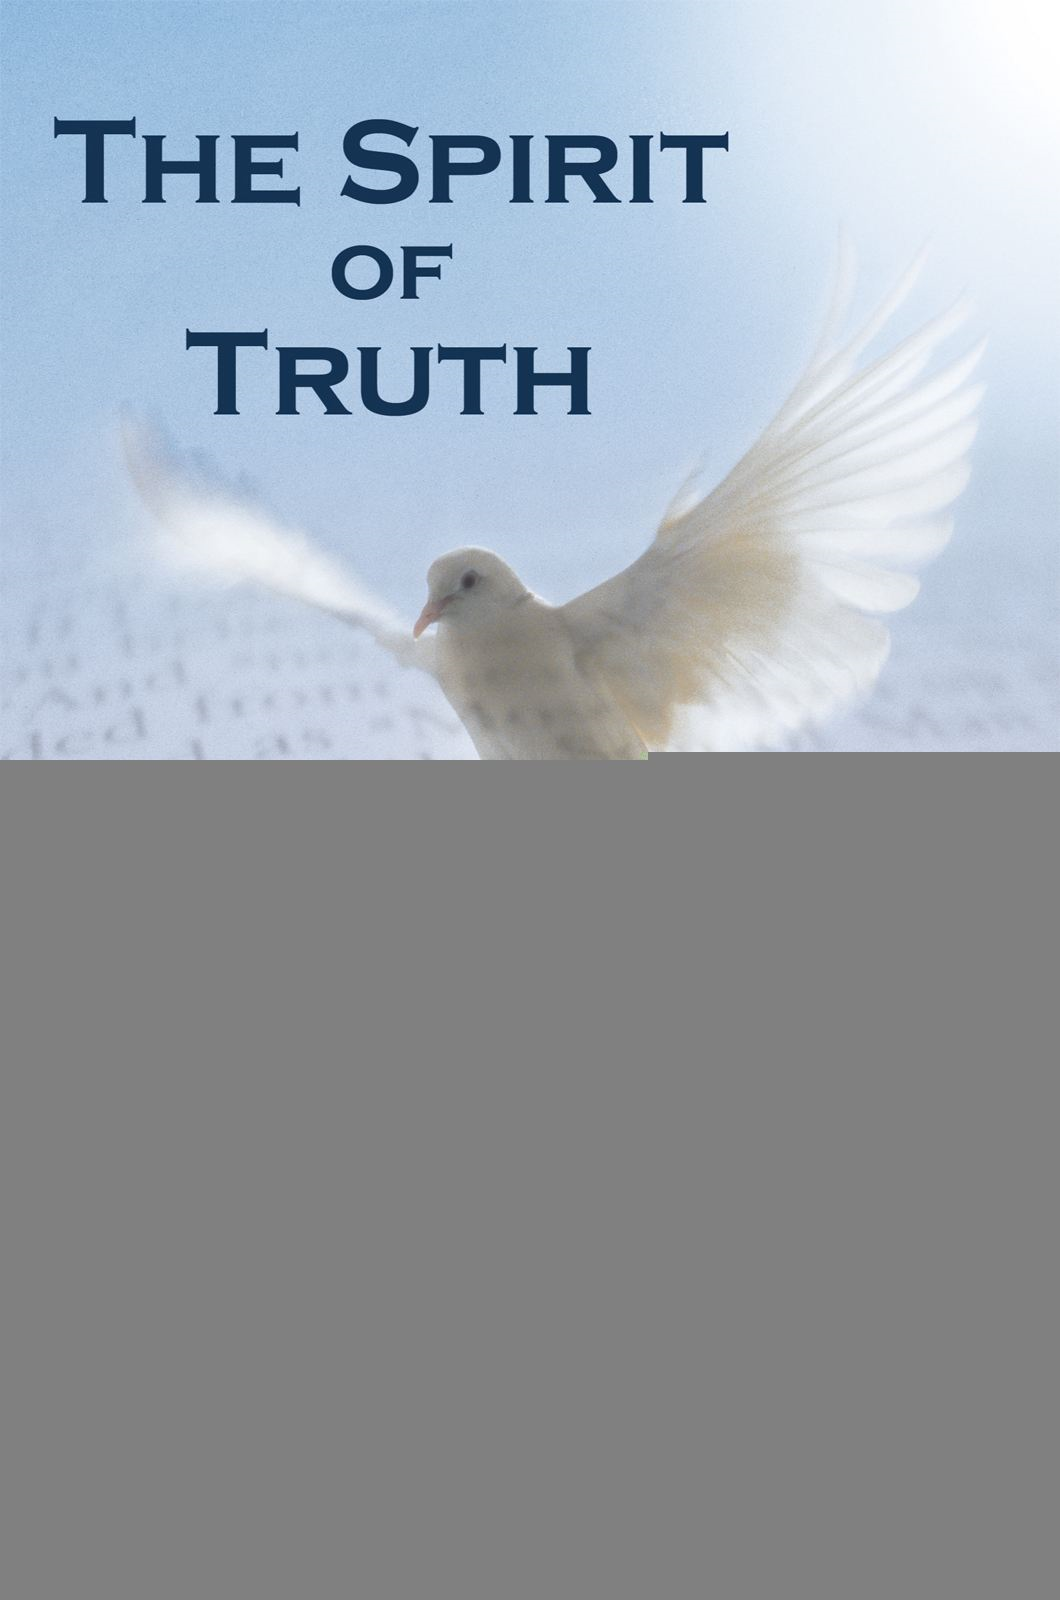 The Spirit of Truth